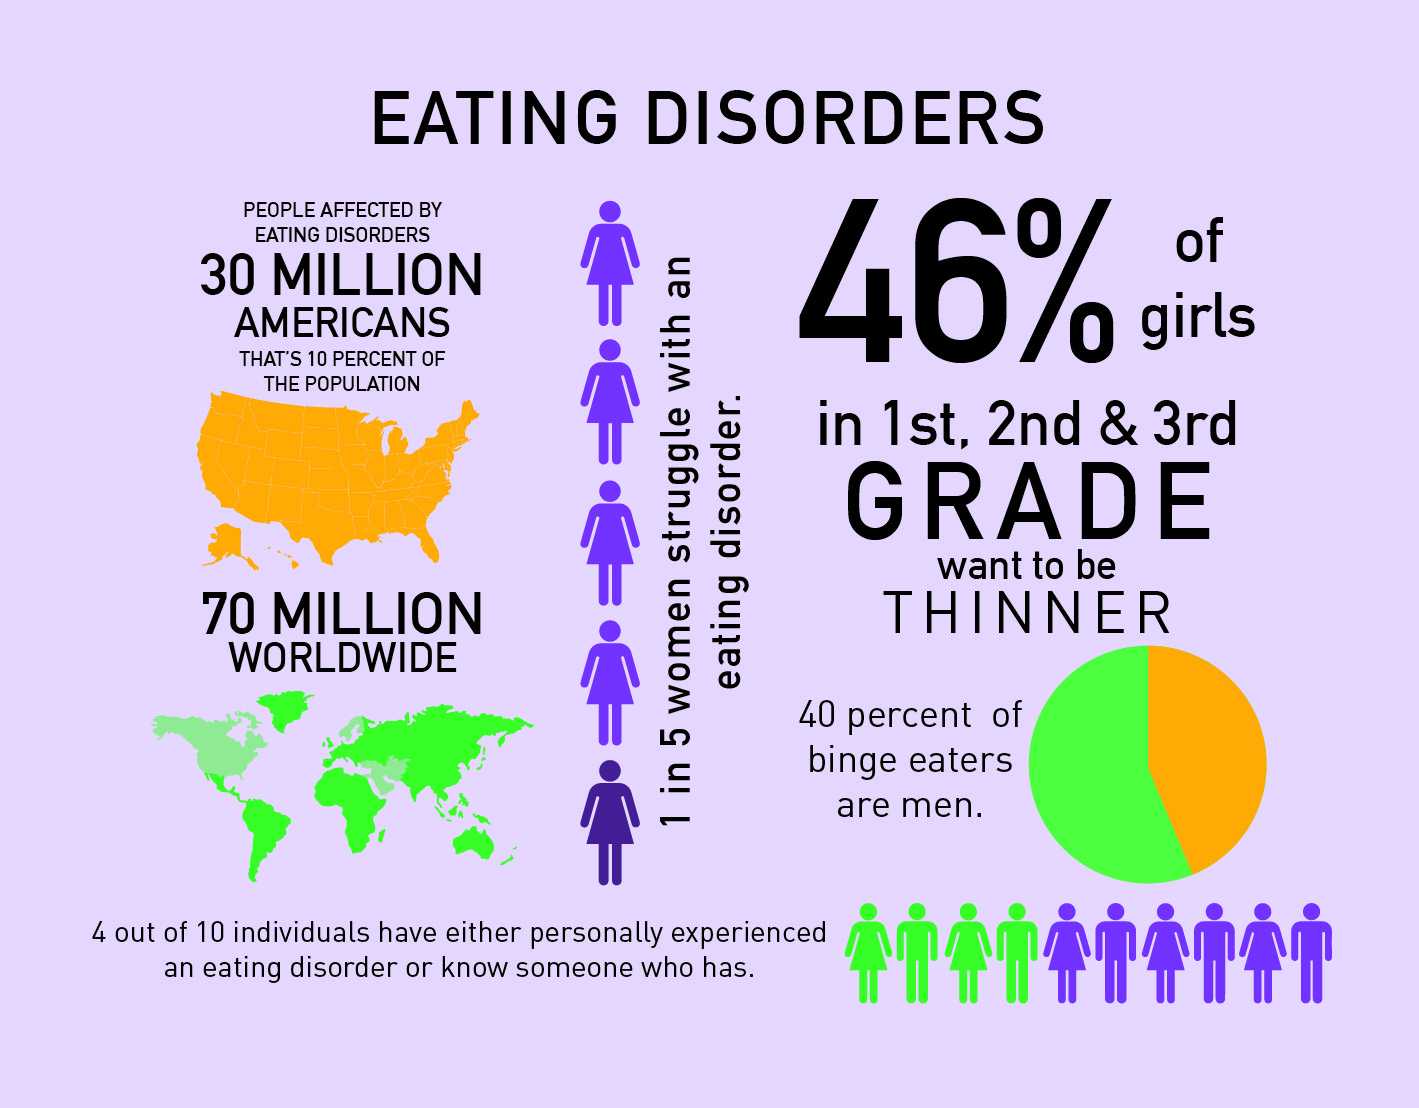 Health insurance and eating disorders